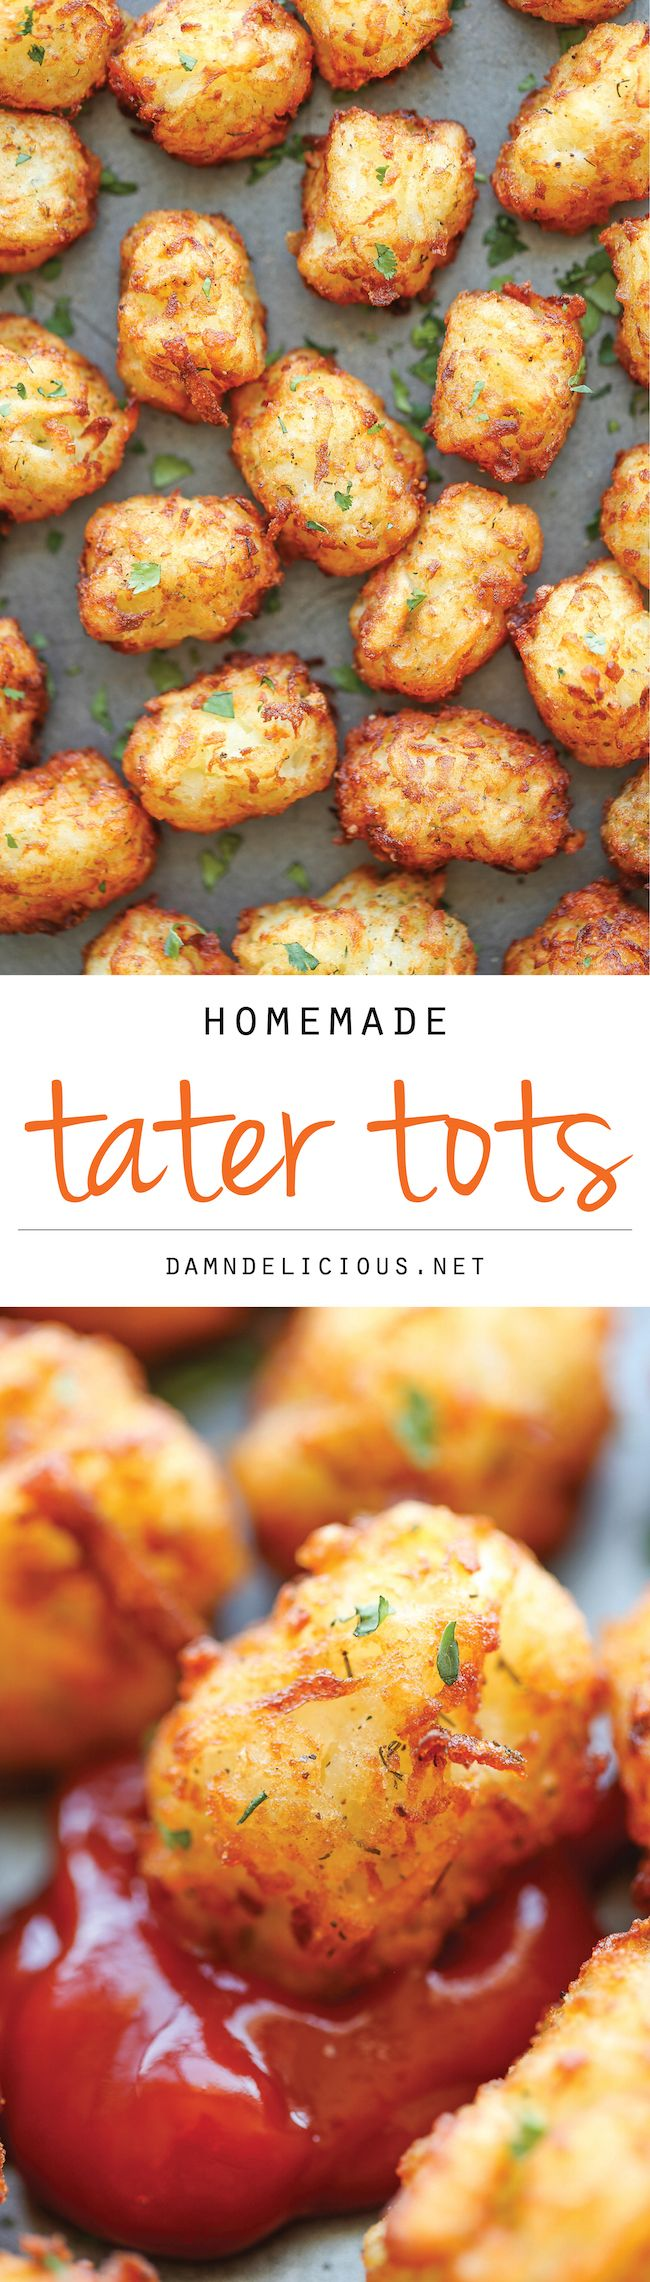 Homemade Tater Tots - Say goodbye to those frozen bags of tater tots. This homemade version is so easy, freezer-friendly and way better than store-bought!